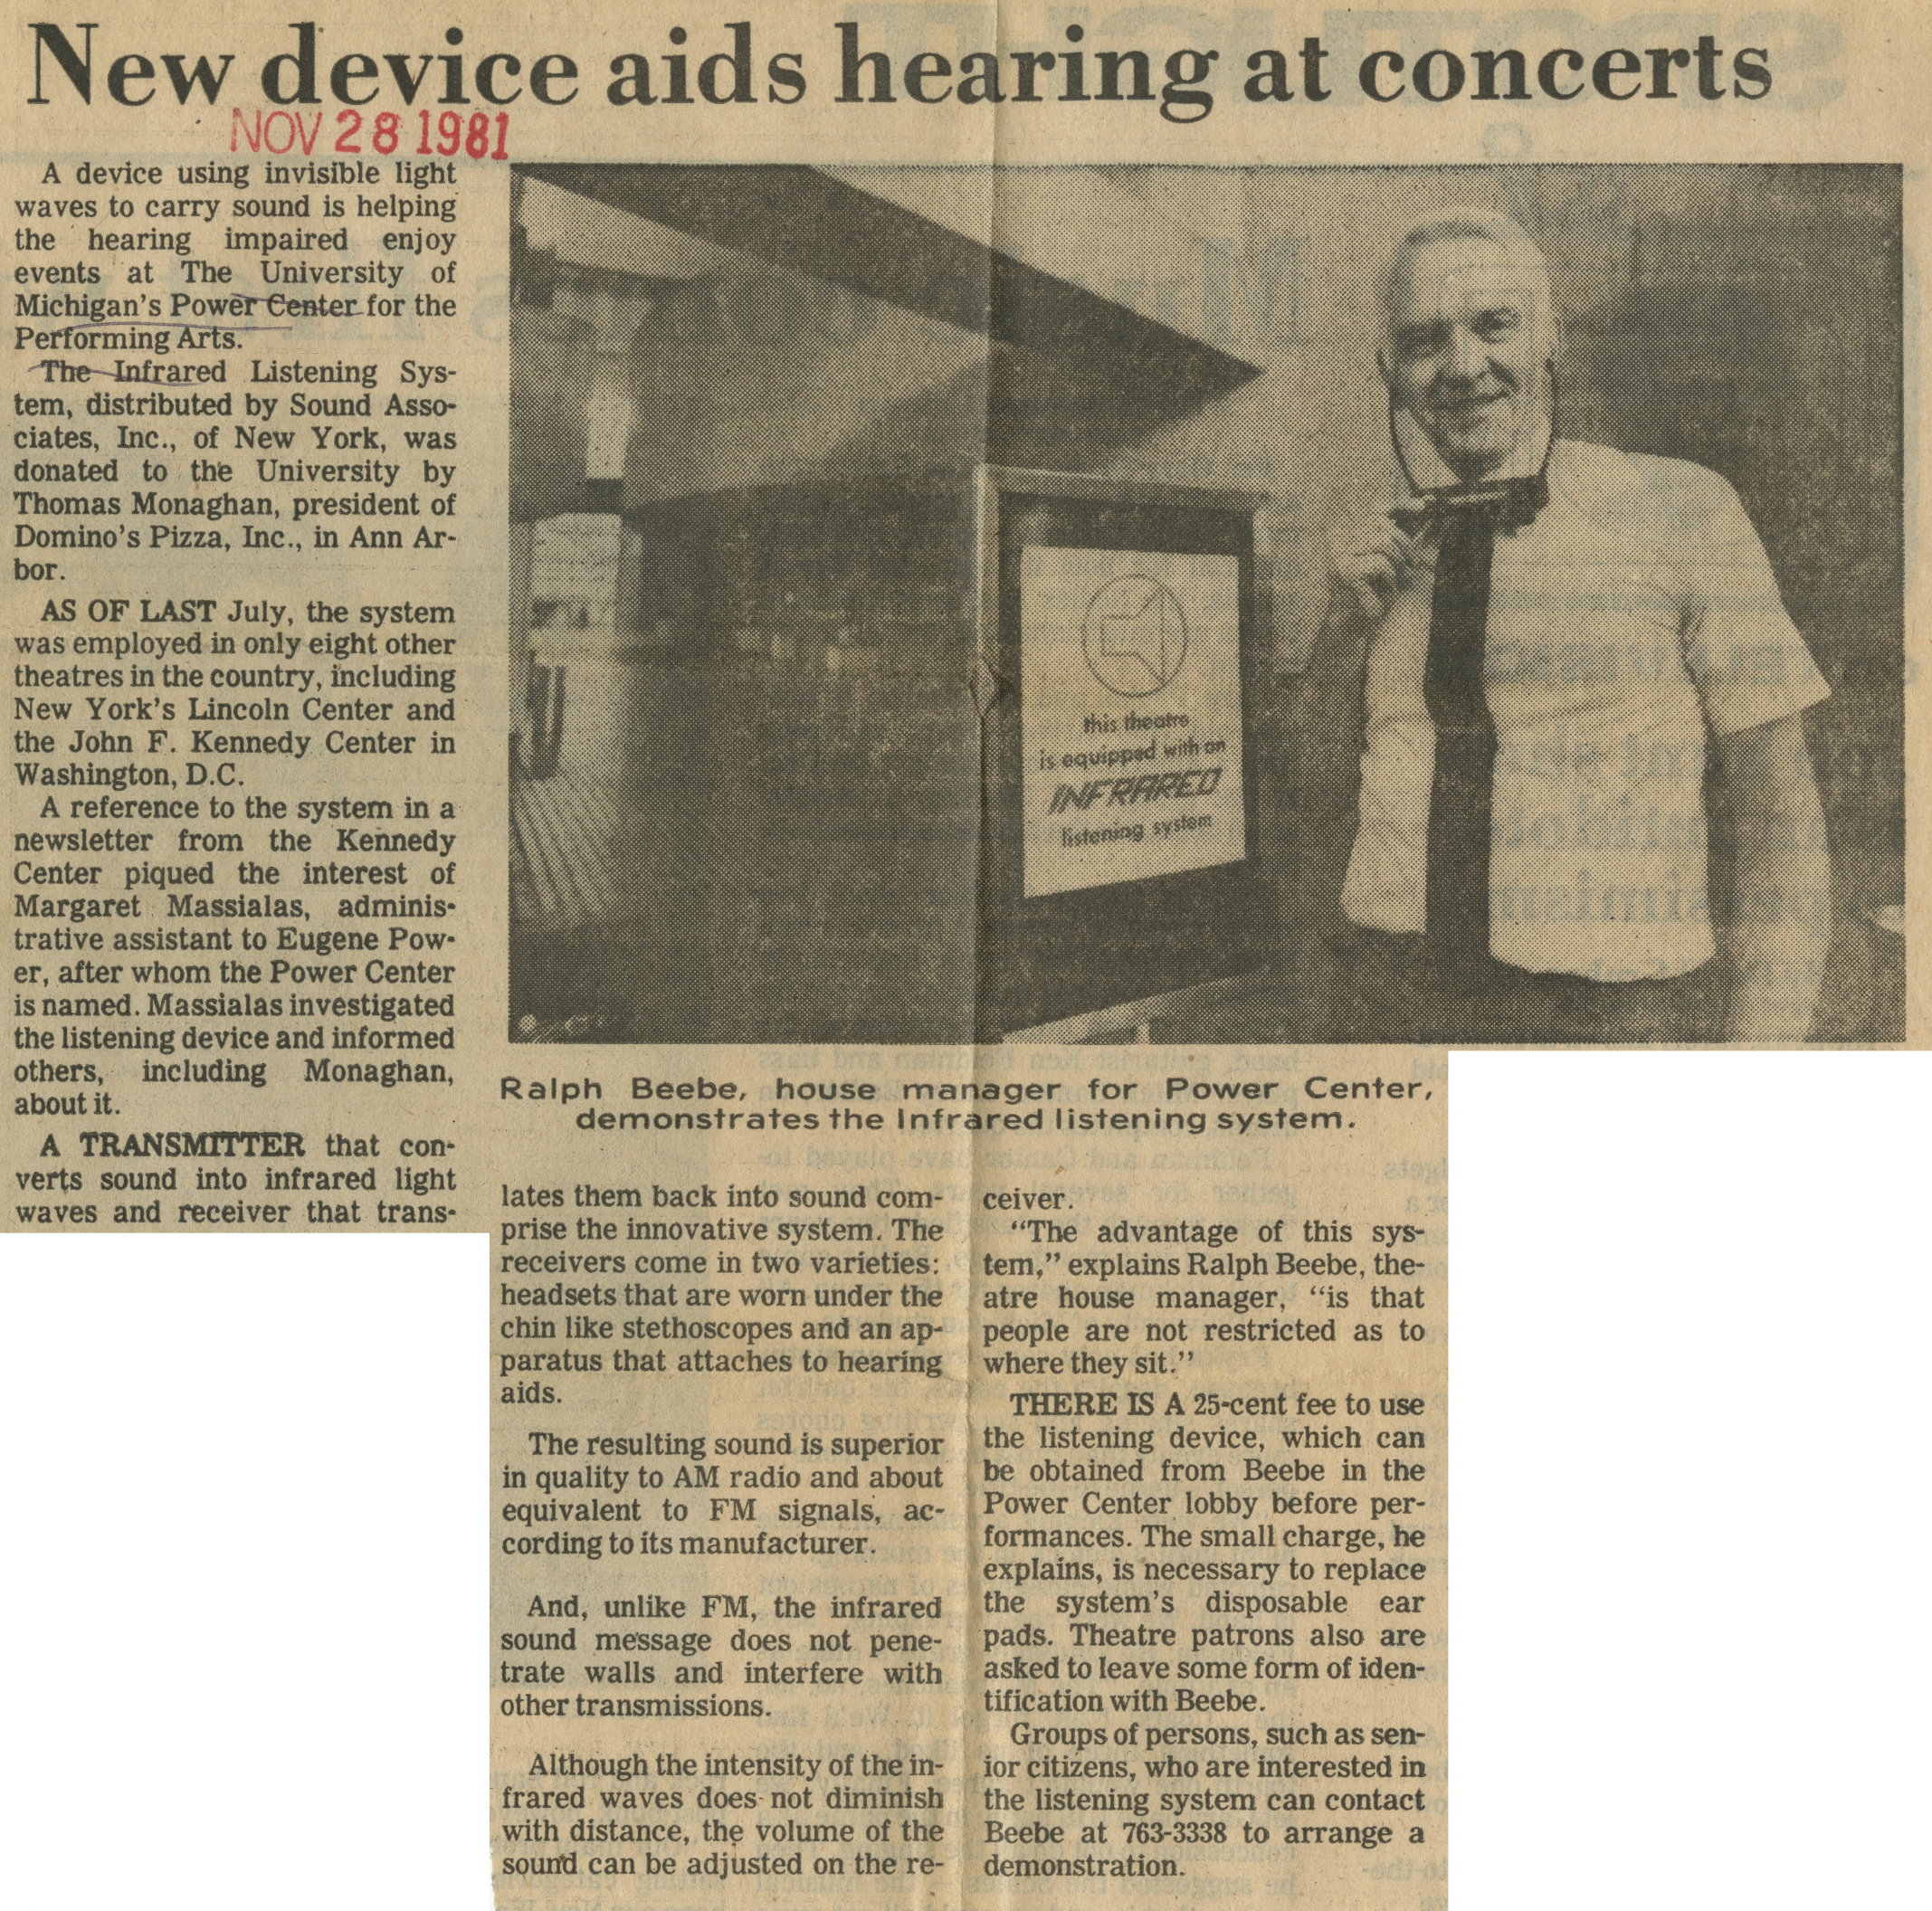 New device aids hearing at concerts image